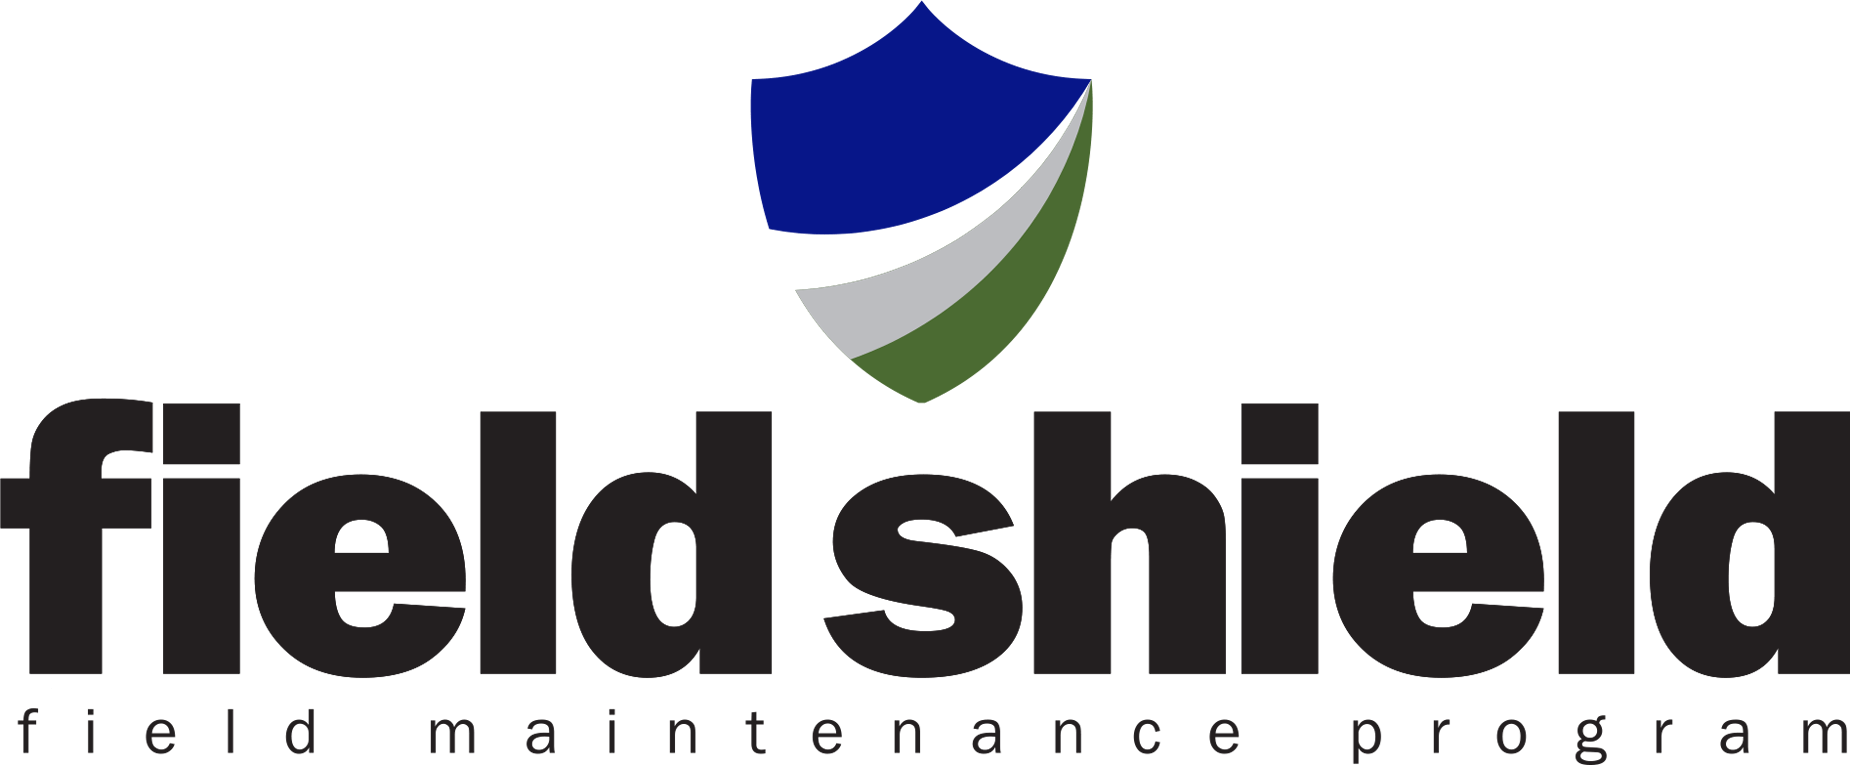 Field Shield - field maintenance program